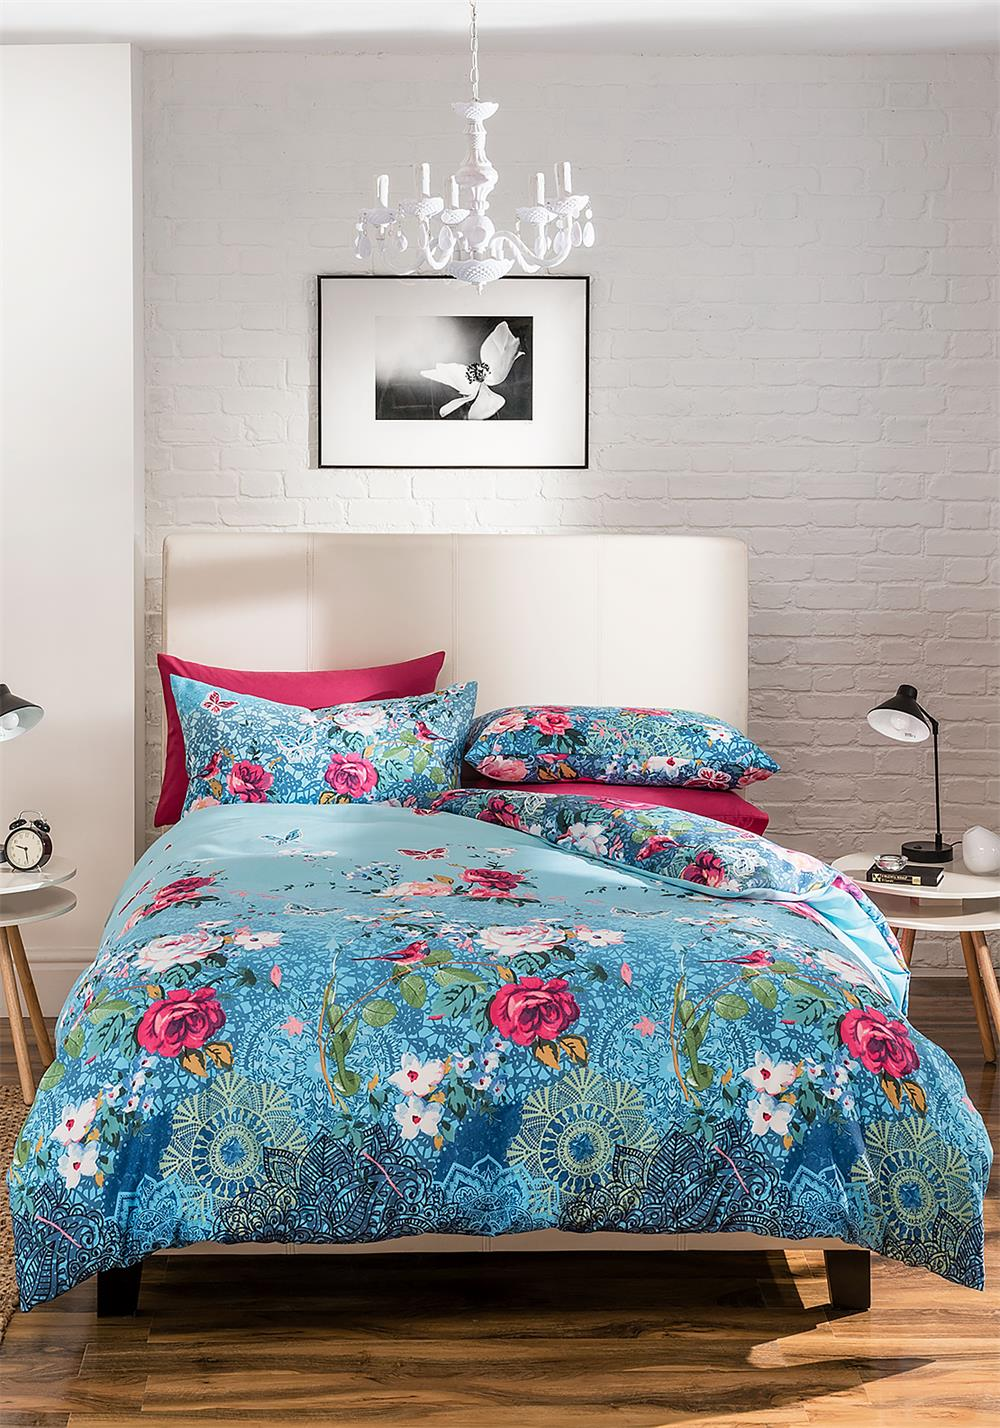 Catherine Lansfield & Home Floral Garden Duvet Cover Set, Blue